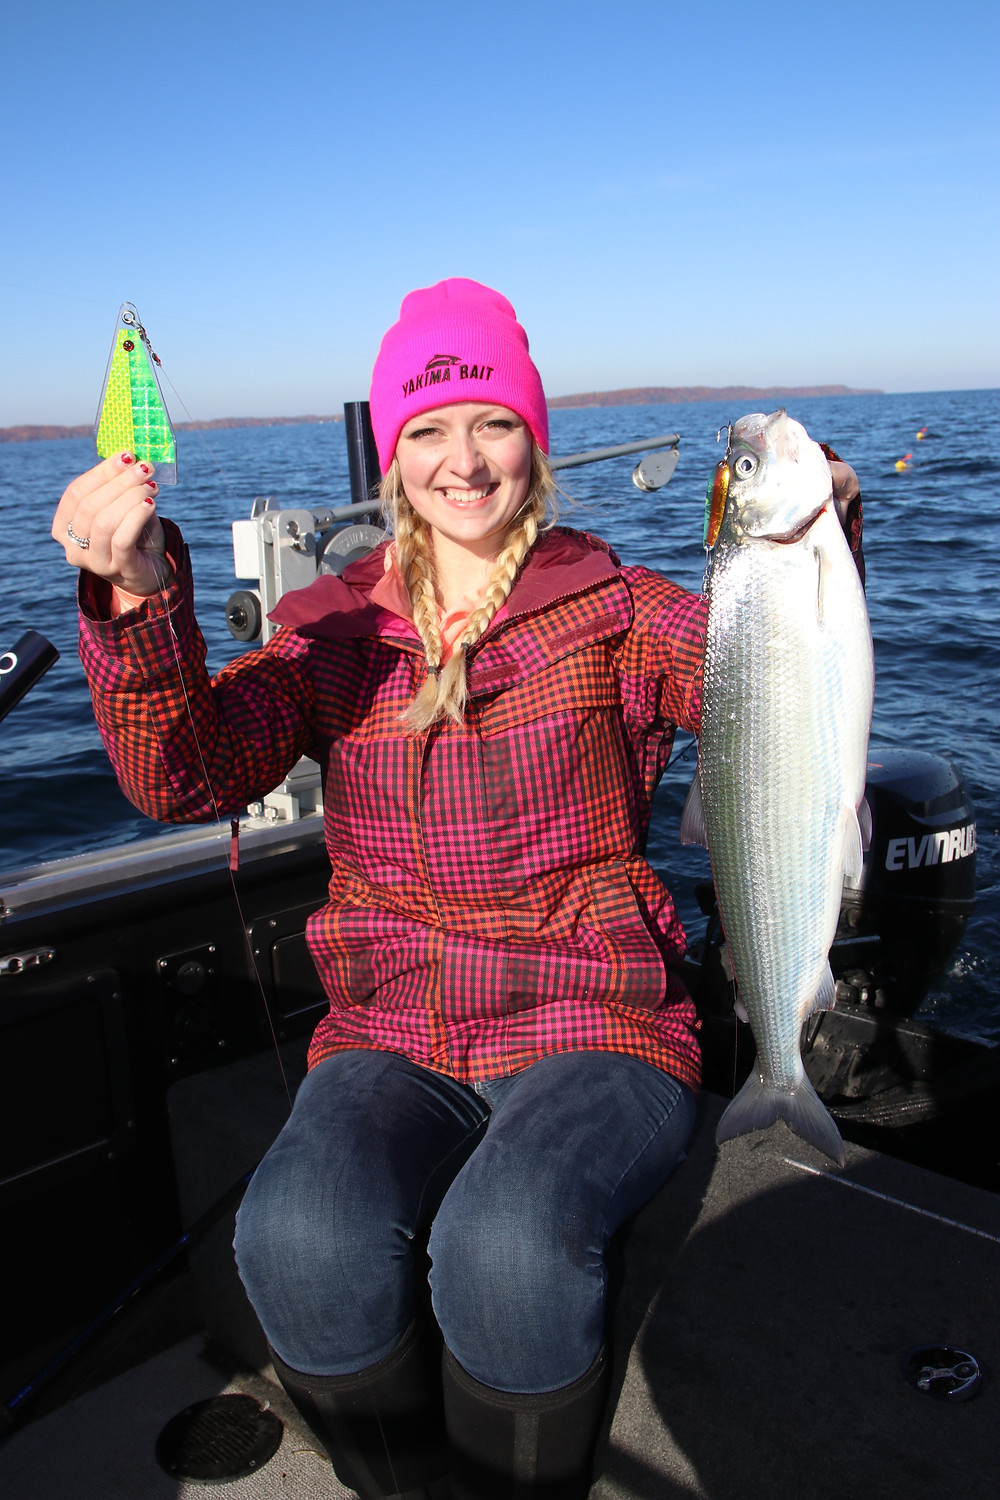 The Big Al Fish Flash is primarily used to catch trout and salmon, but Paige proves that Fish Flash also works great on other species like this Great Lakes cisco a member of the whitefish family.